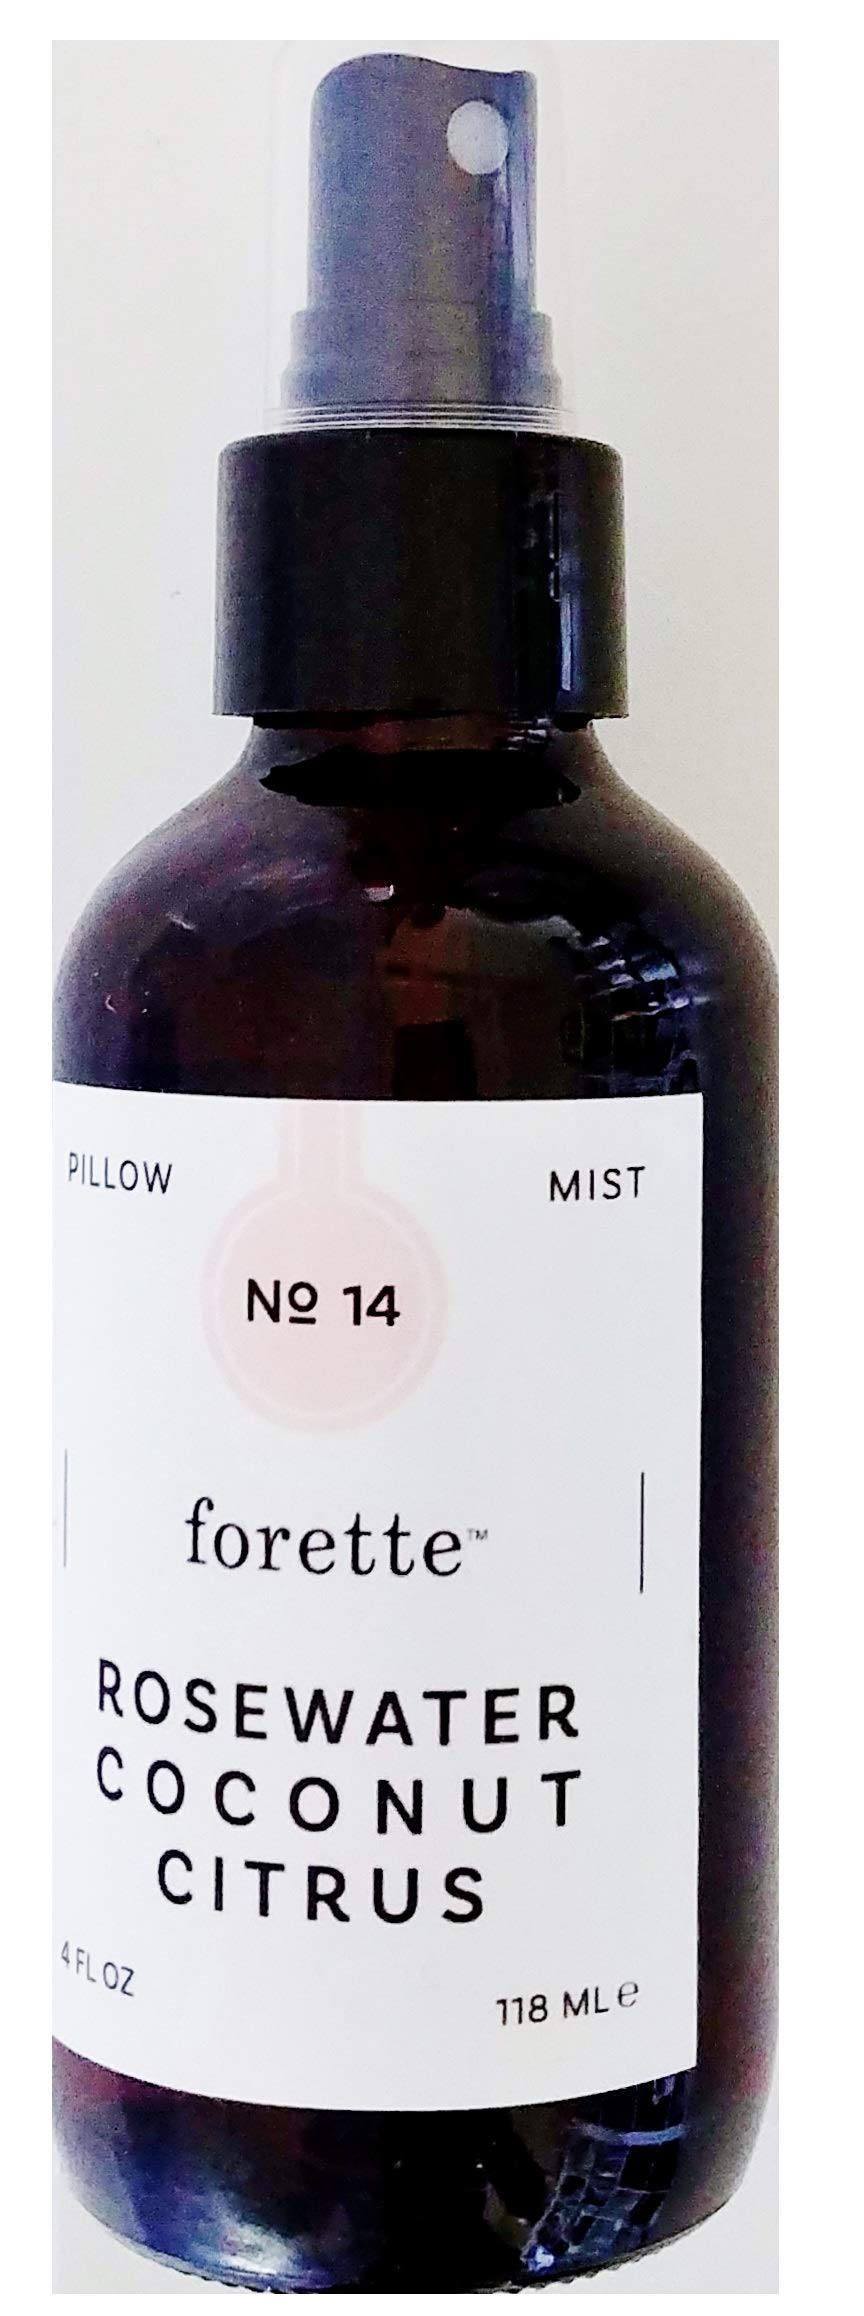 Forette No 12 Rosewater Coconut Citrus Pillow Mist Spray - Calming Aromatic Blends Helps To Sooth the Senses, Relax Your Mind, Balance Your Mood